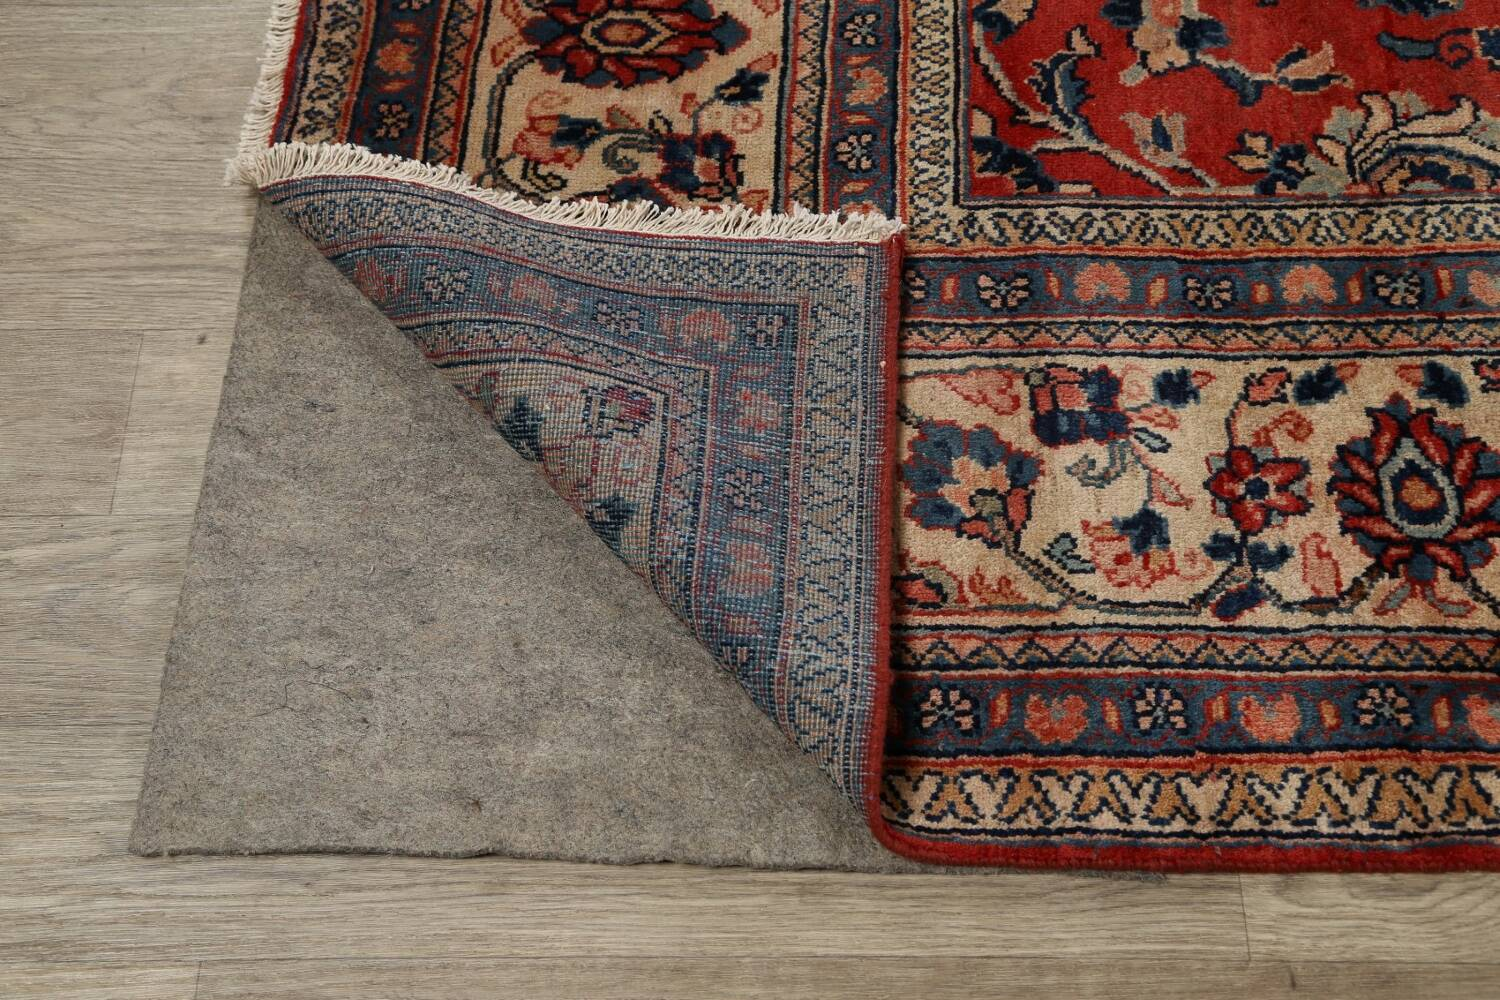 Antique Floral Mahal Persian Area Rug 10x14 image 7